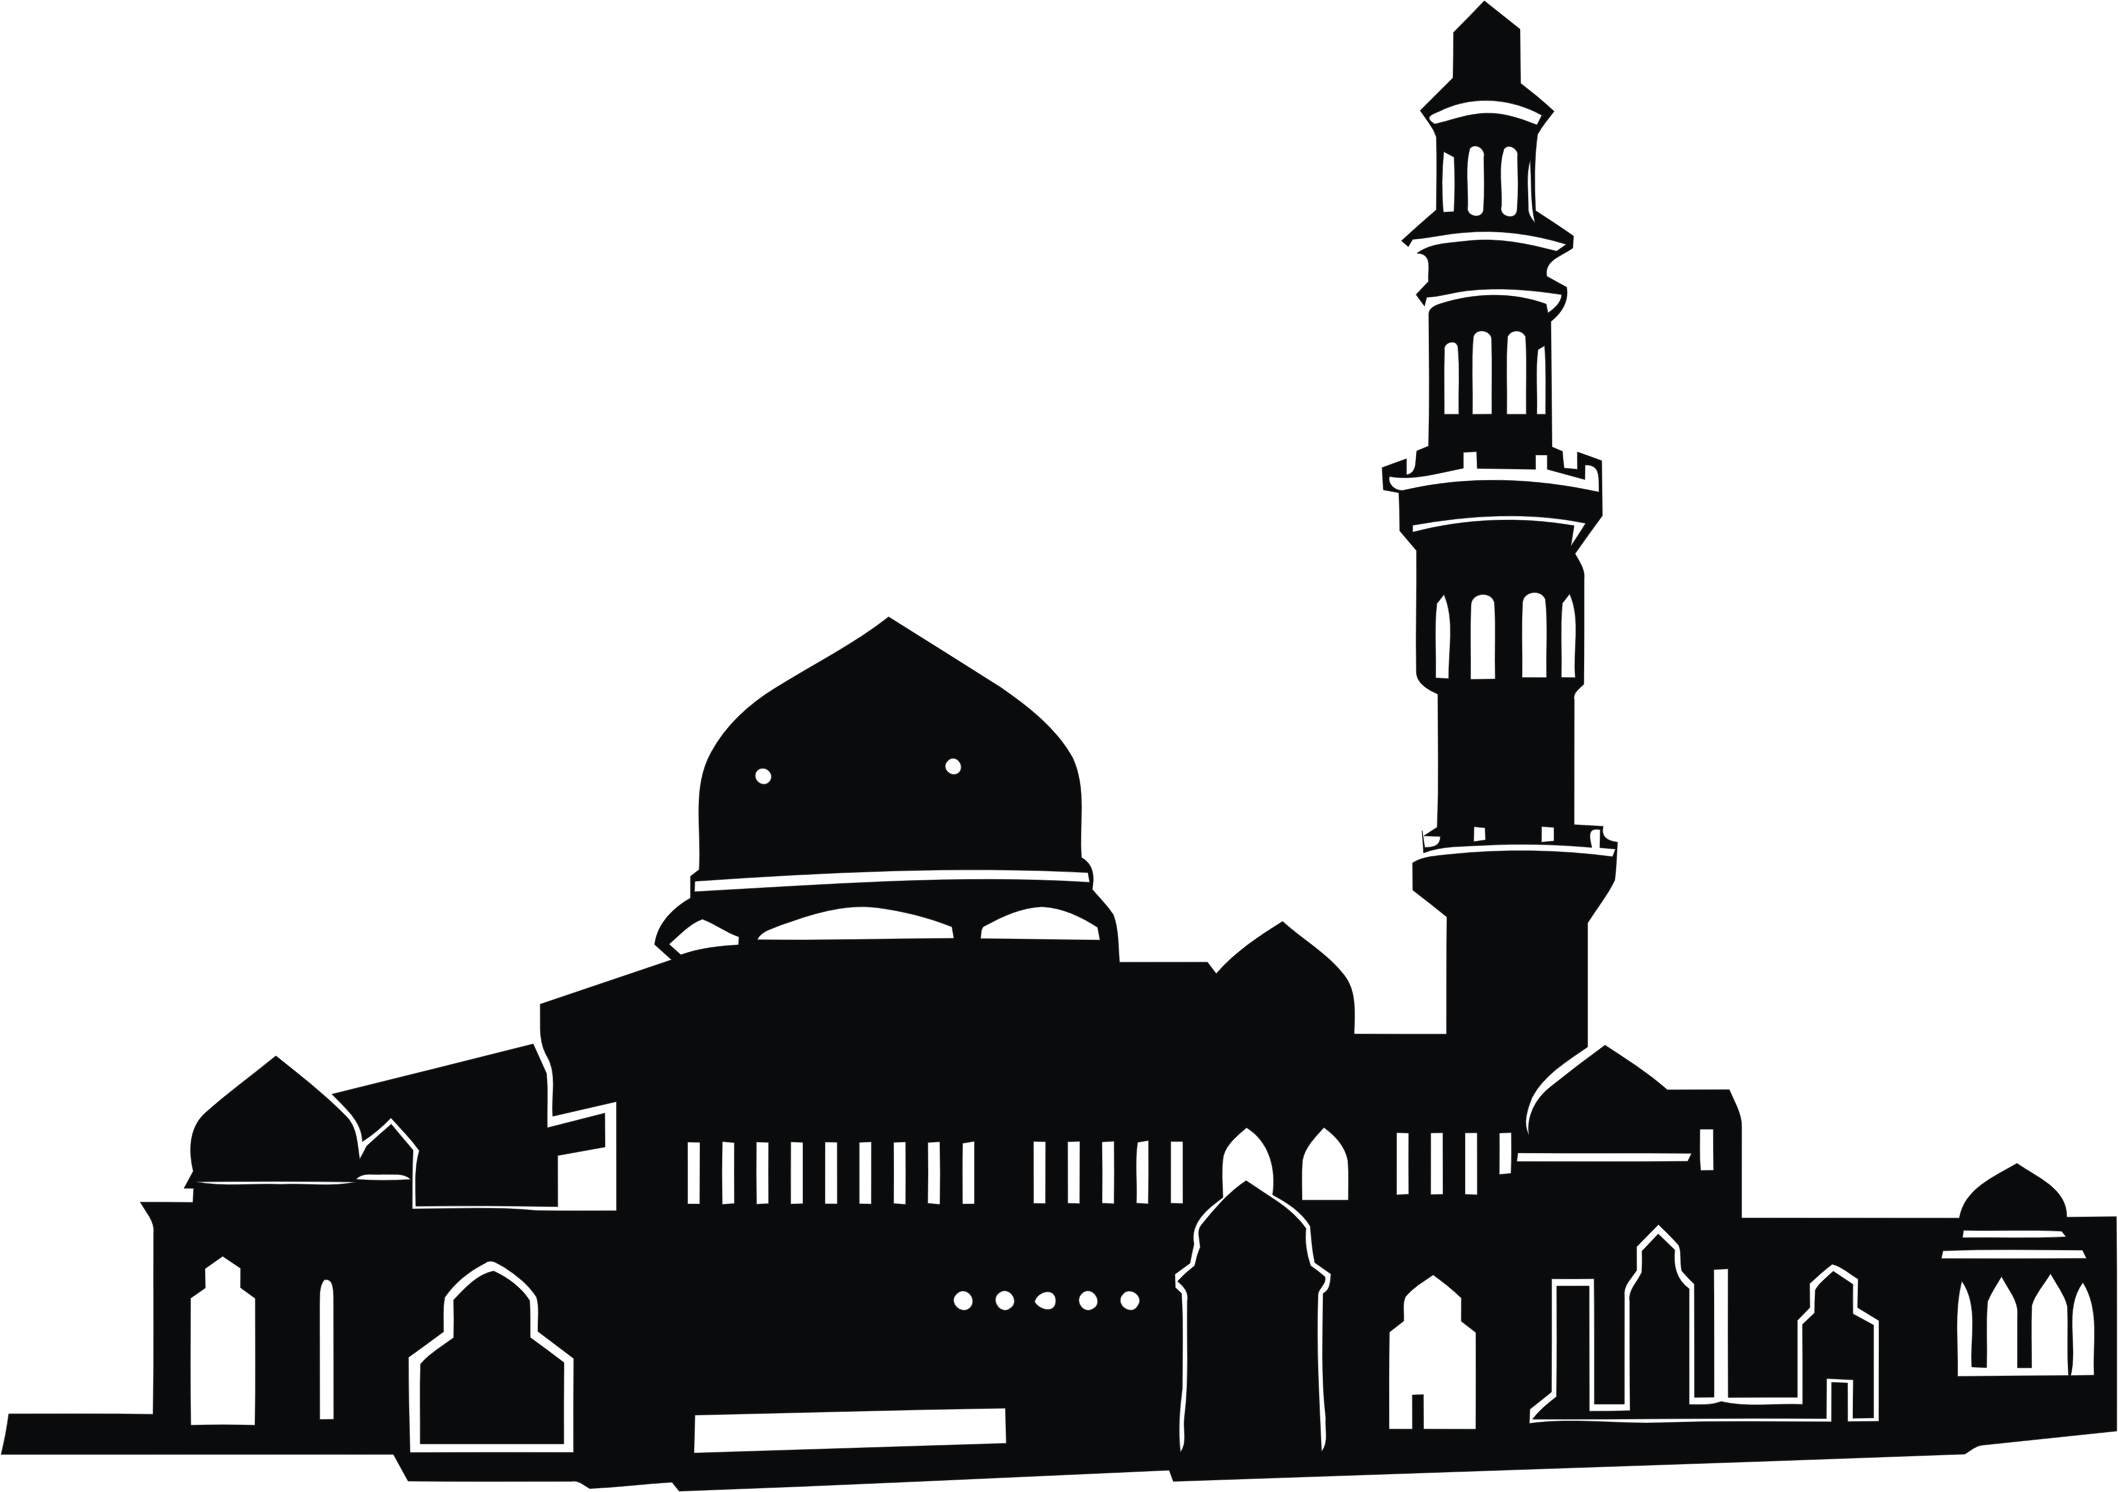 Mosque png icon #2941 - Free Icons and PNG Backgrounds